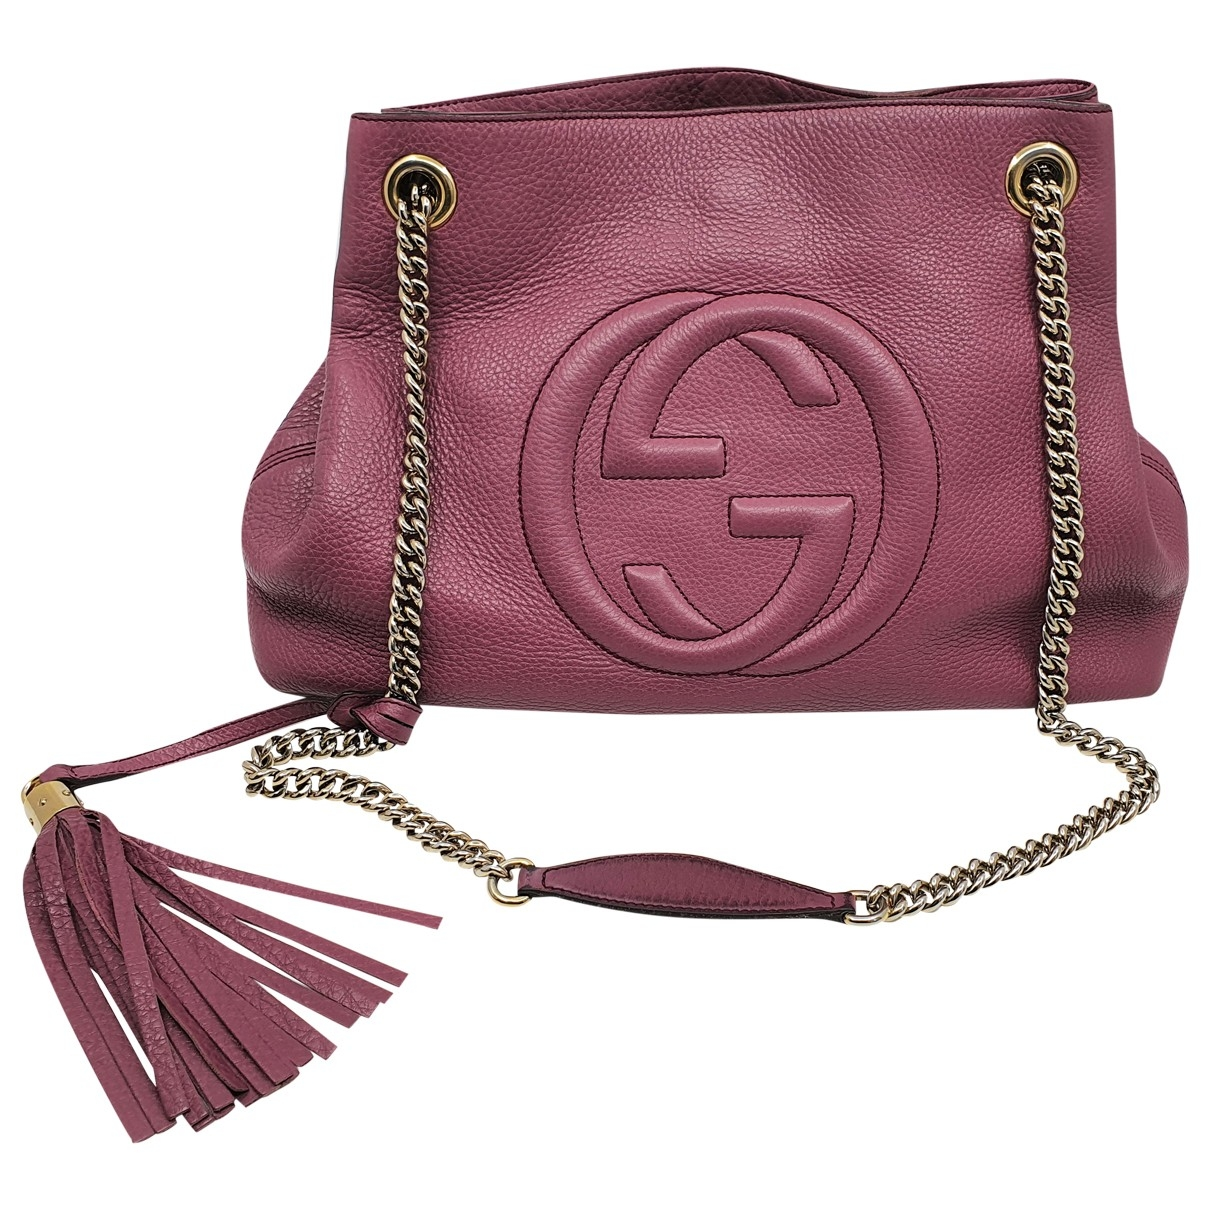 Gucci Soho Purple Leather handbag for Women \N